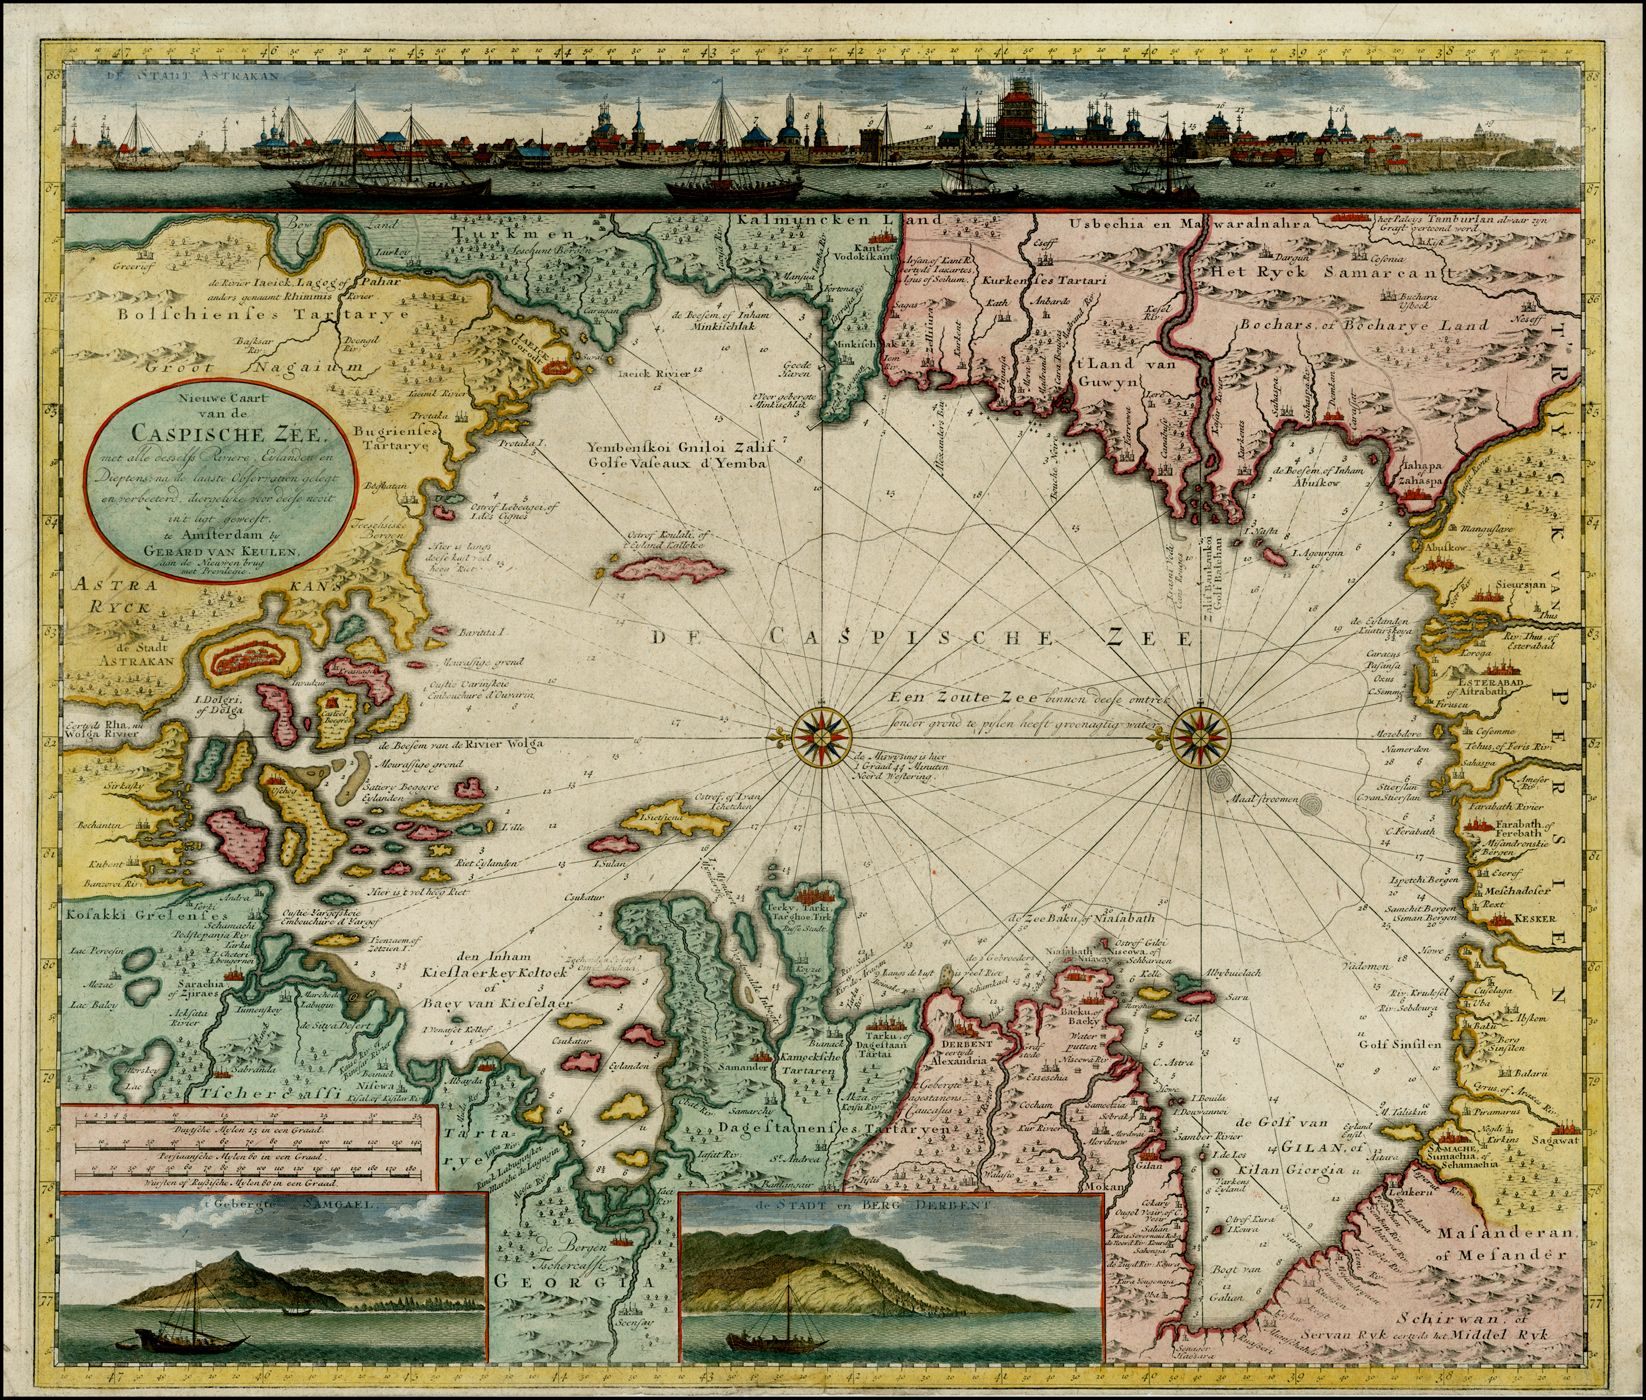 Sea chart of the Caspian Sea, 1720. | Maps | Map globe, Old ...